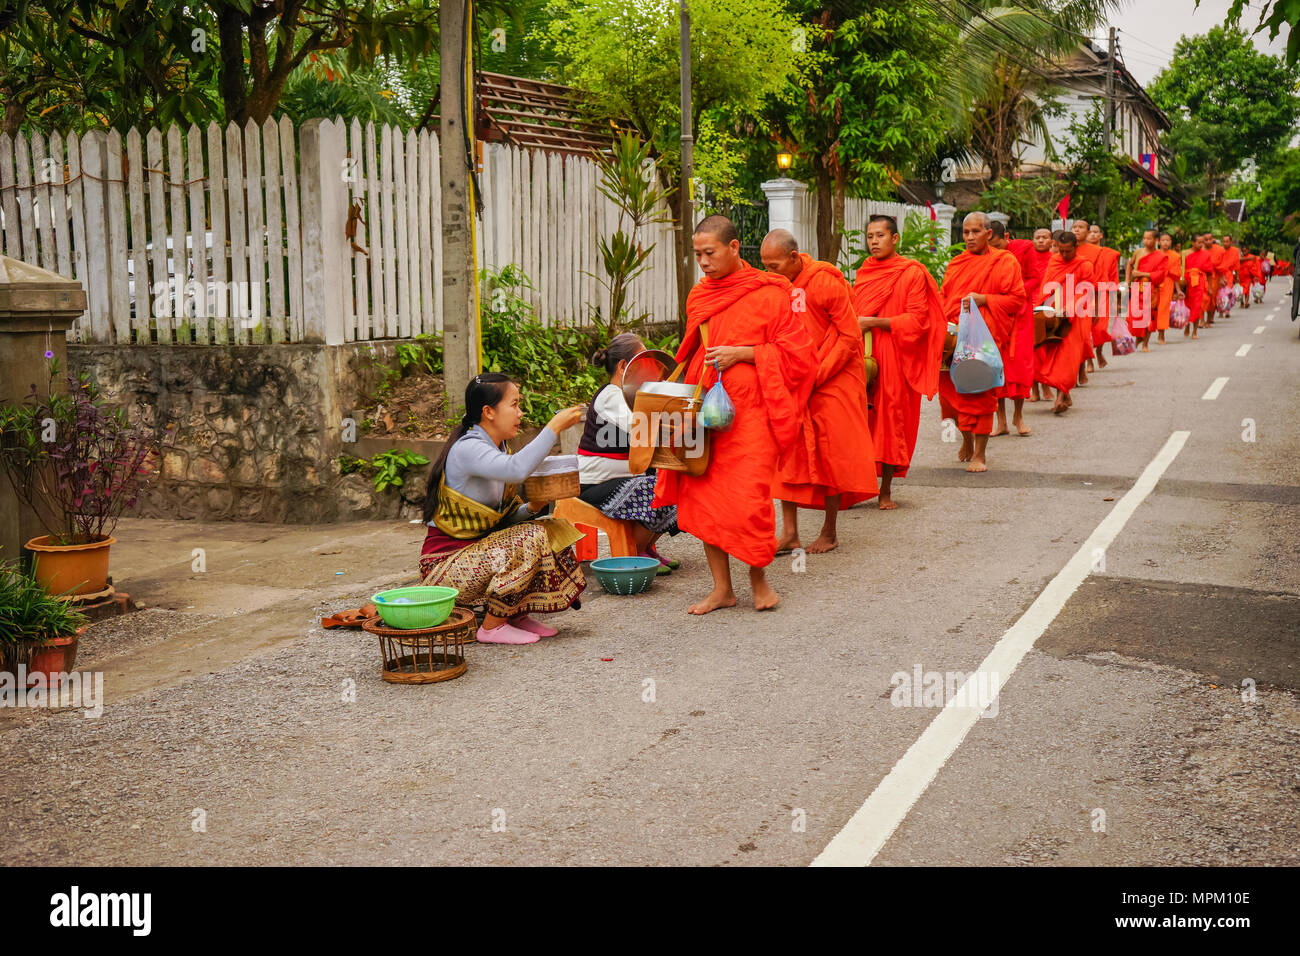 Luangprabang, Laos - December 8, 2015: Laos people offering food and things to group of Buddhist monks in morning on rural street in Luangprabang, Lao - Stock Image